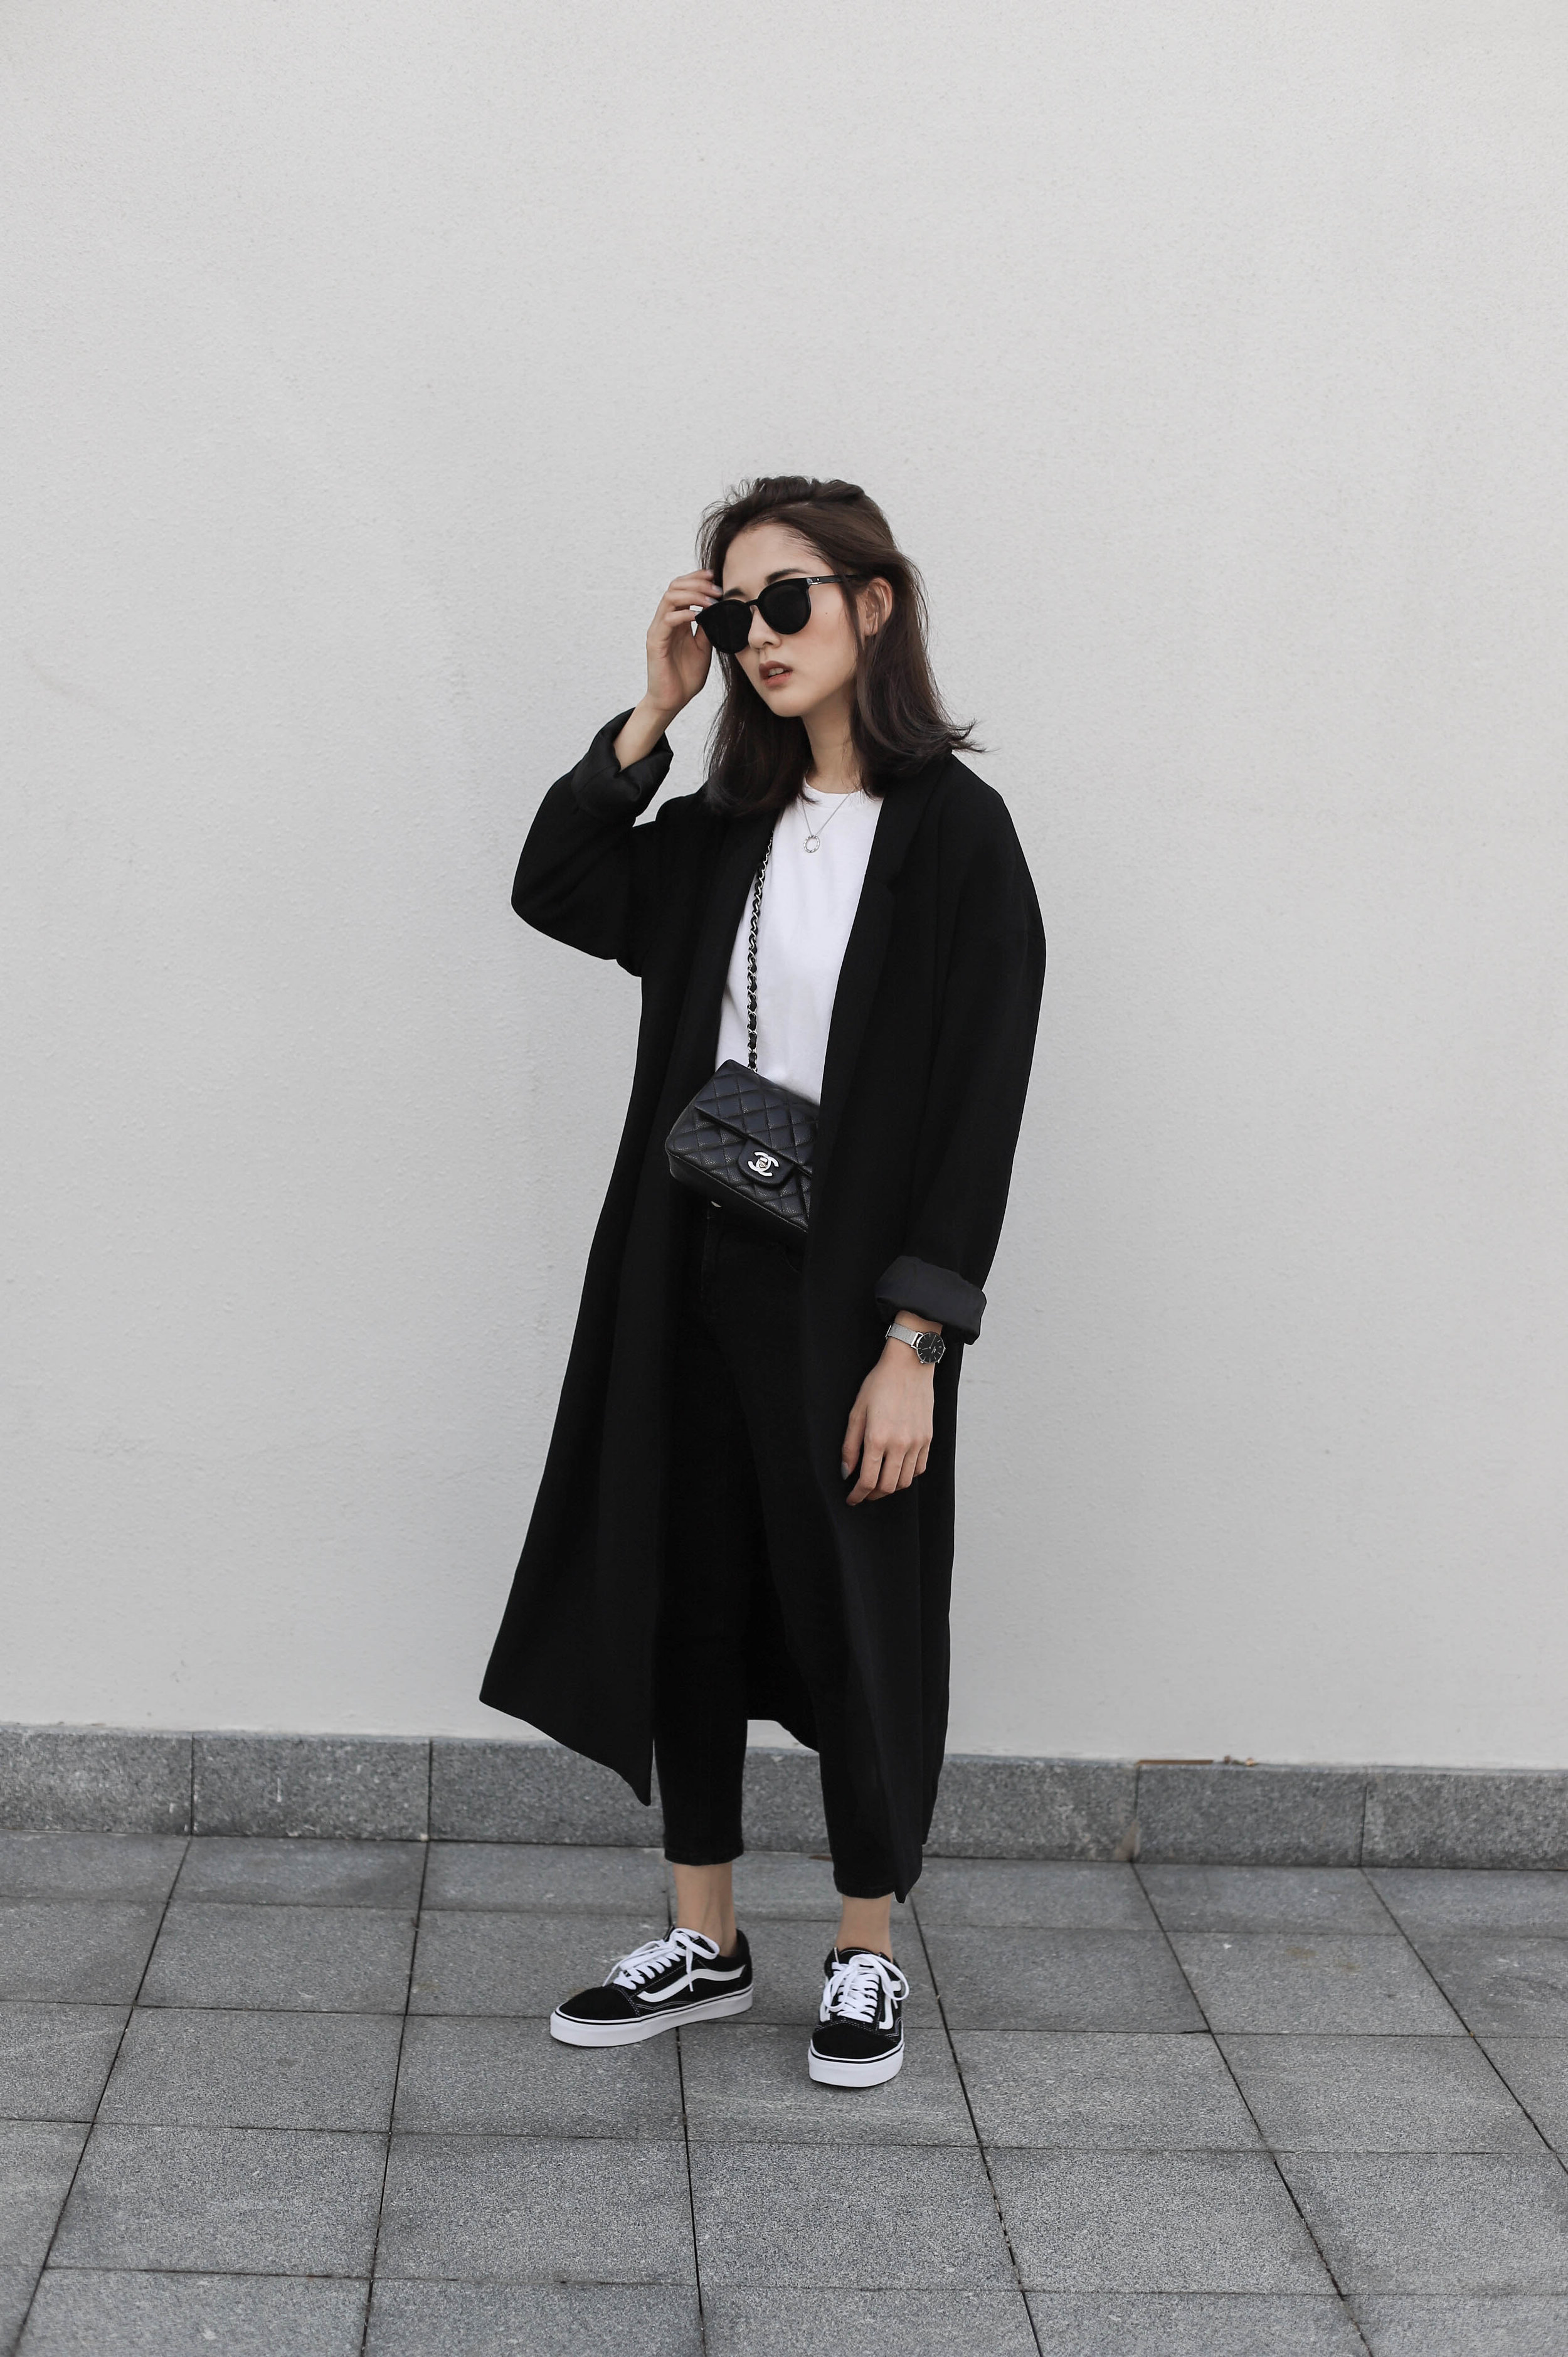 Julia Doan fashion Blogger Vietnam-4.jpg